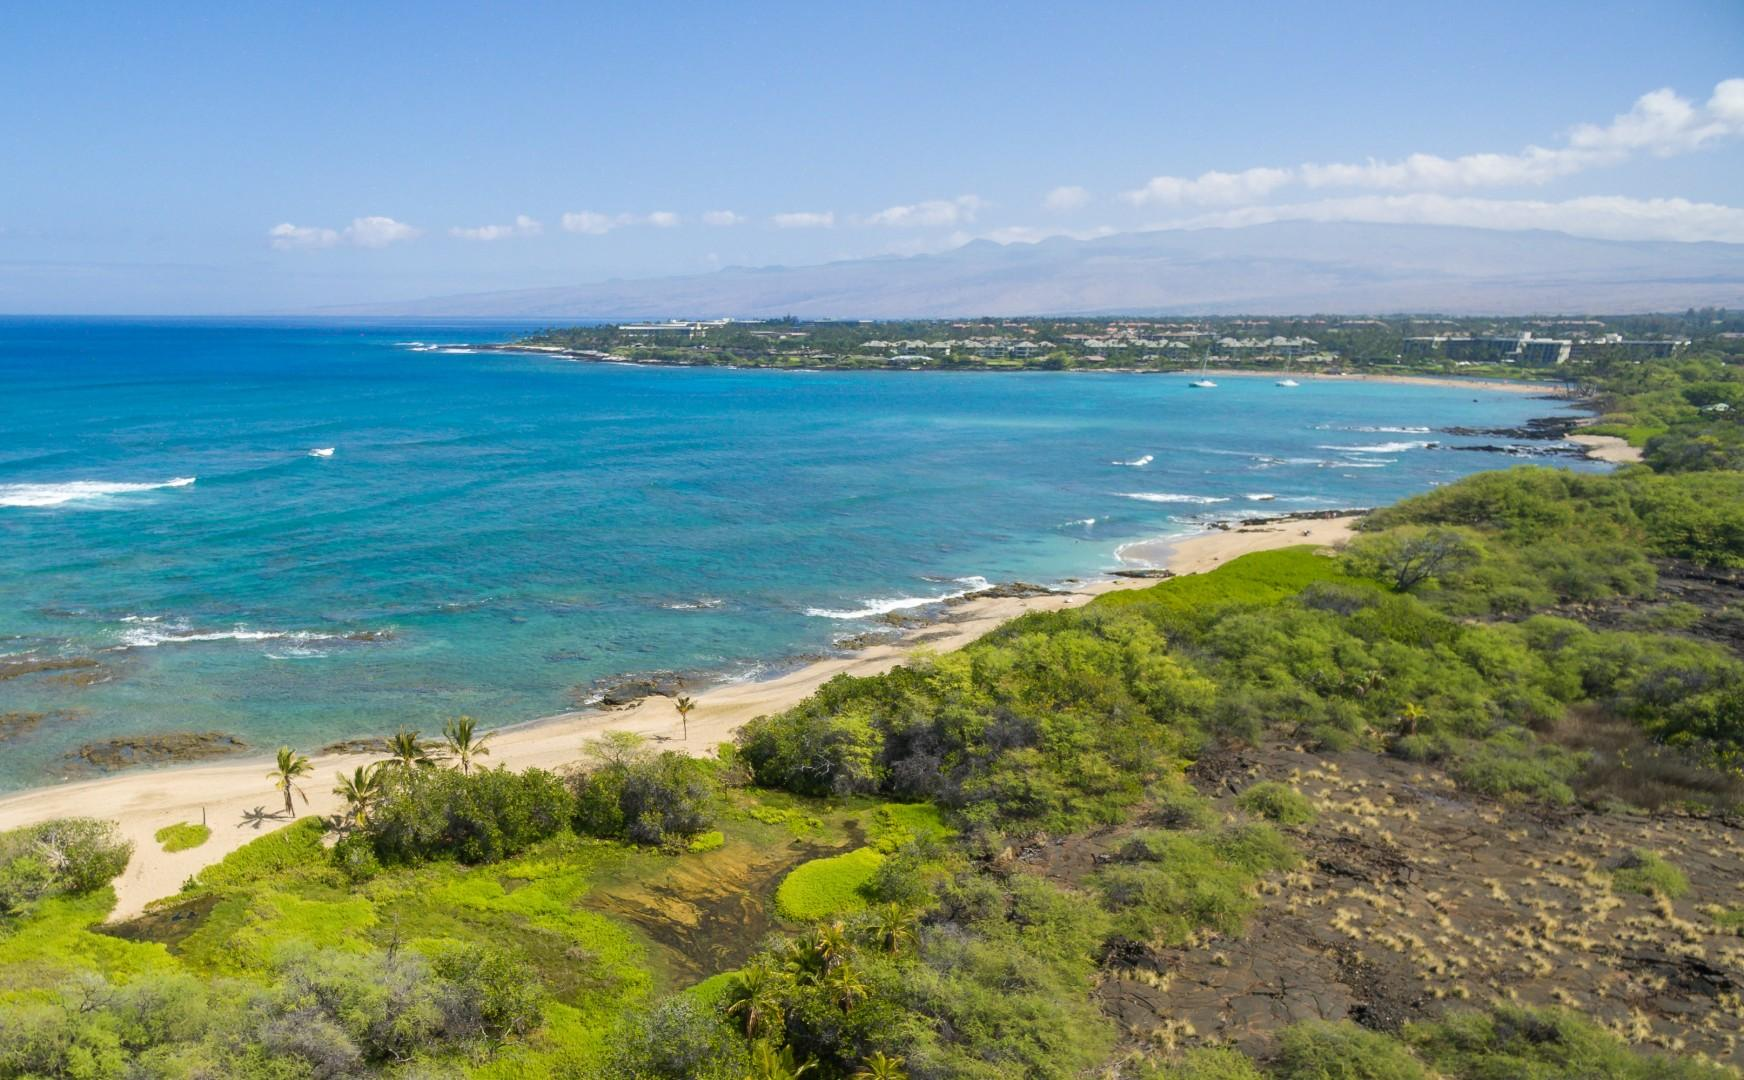 Take a hike from the resort along the Kings trail for miles passing the Hilton resort and many scenic areas.